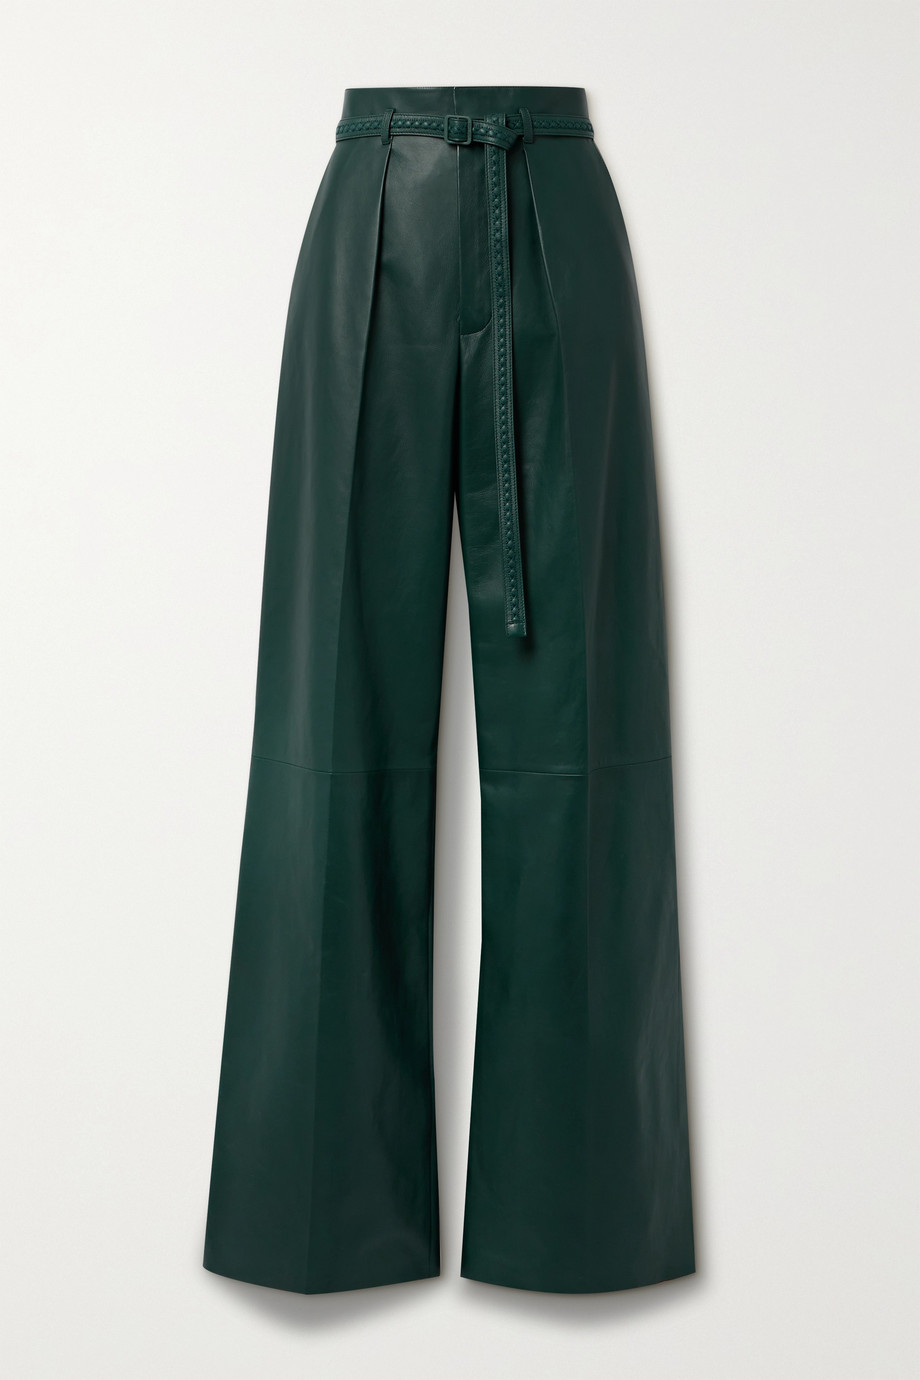 Loro Piana Kyle Alabama belted leather wide-leg pants